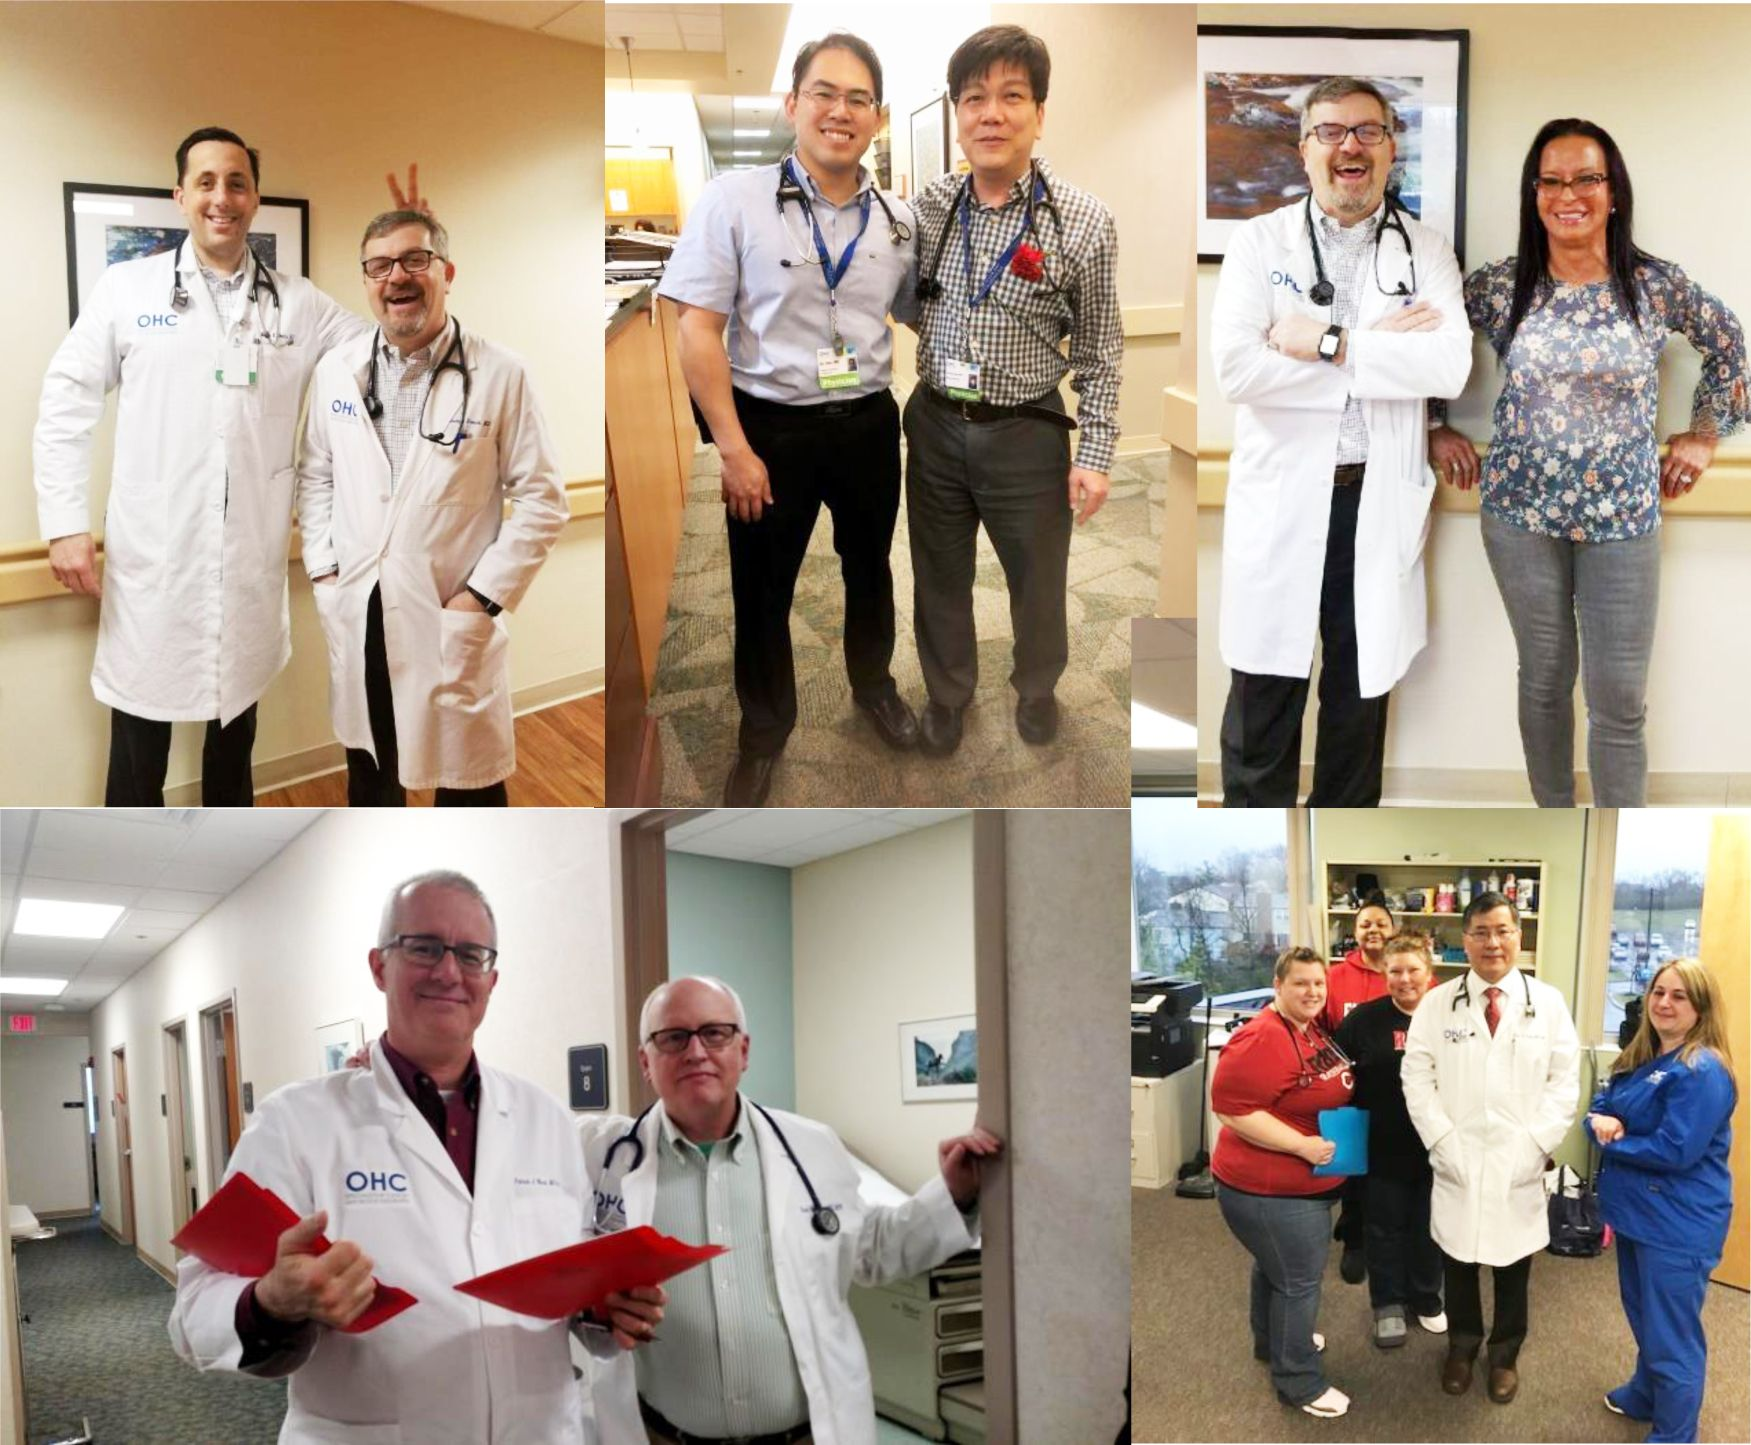 Today March 30 Is Doctors Day At Ohc We Are Proud And